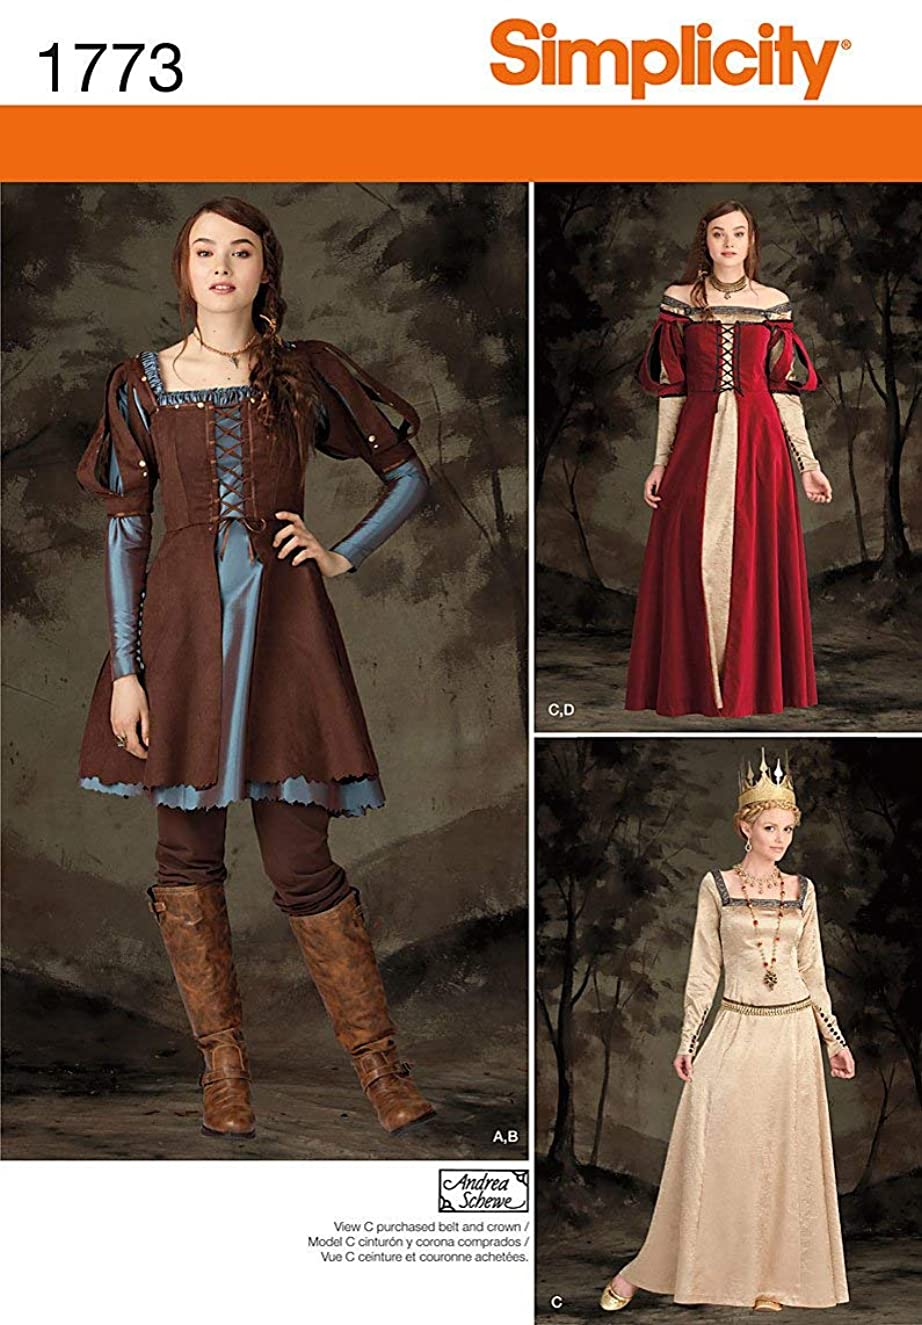 Simplicity Pattern 1773 H5 Misses' Costume Medieval Dress in Two Lengths, Size 6-8-10-12-14